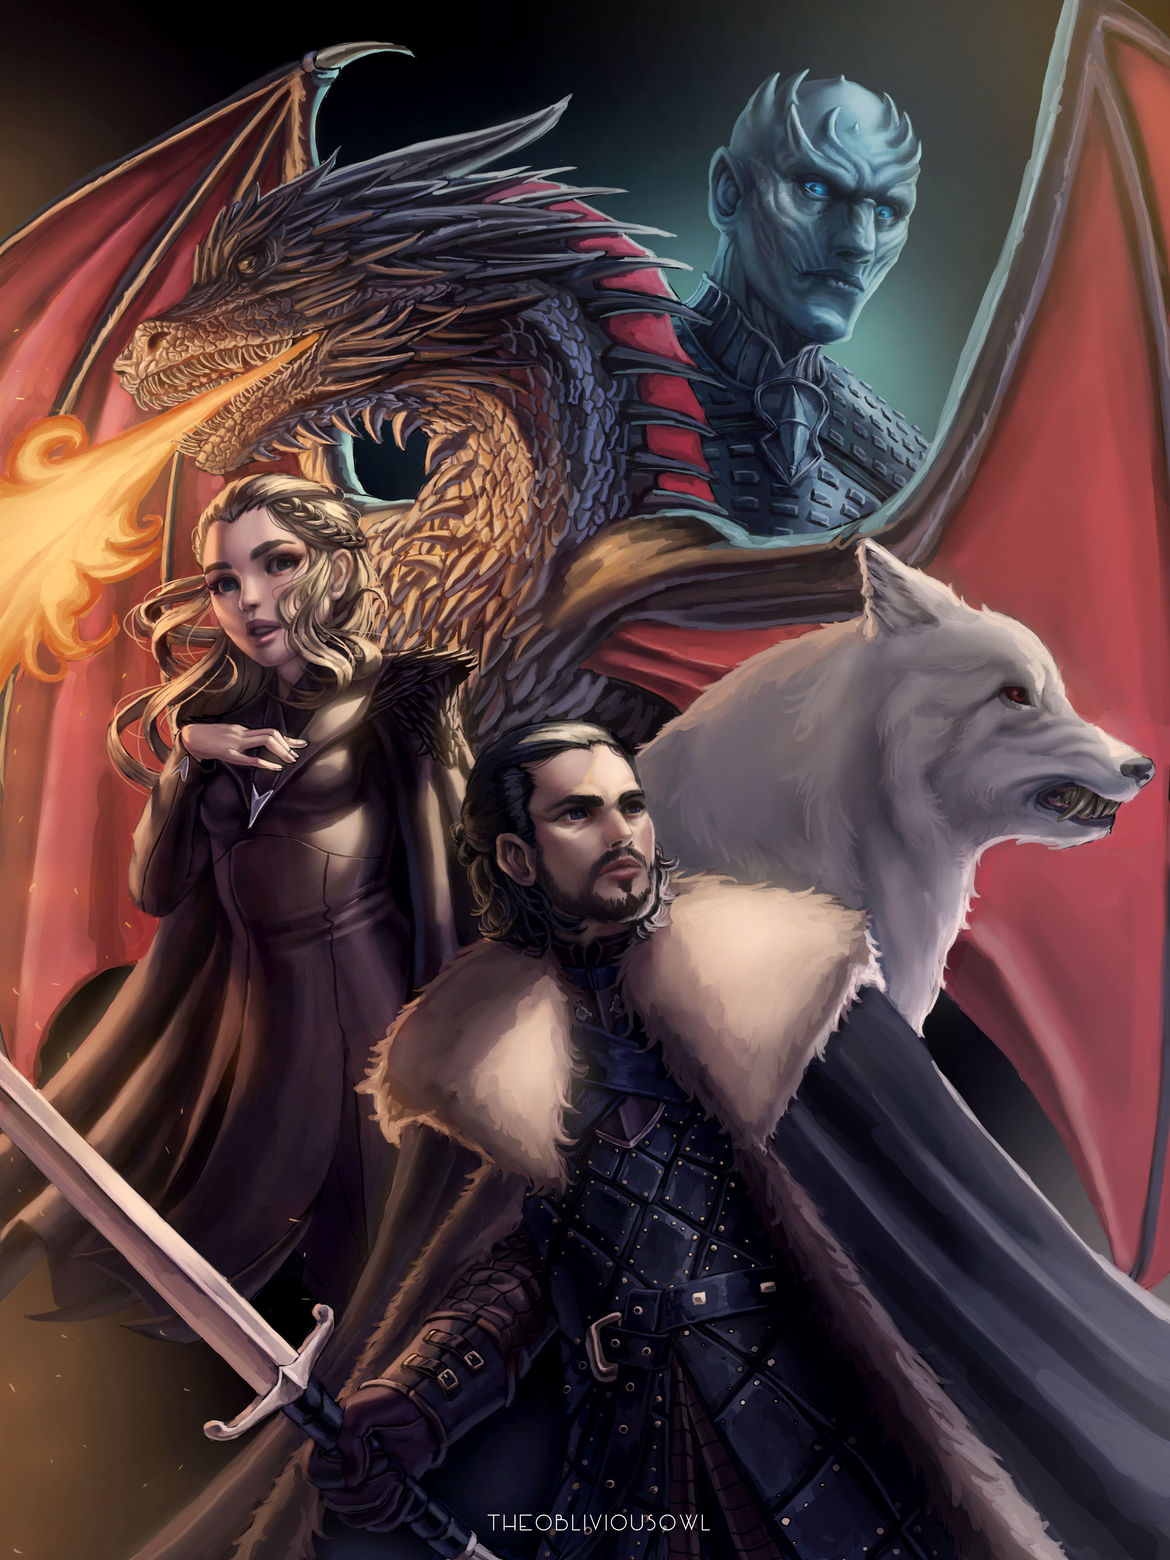 Game of Thrones fanfiction keeps the story going